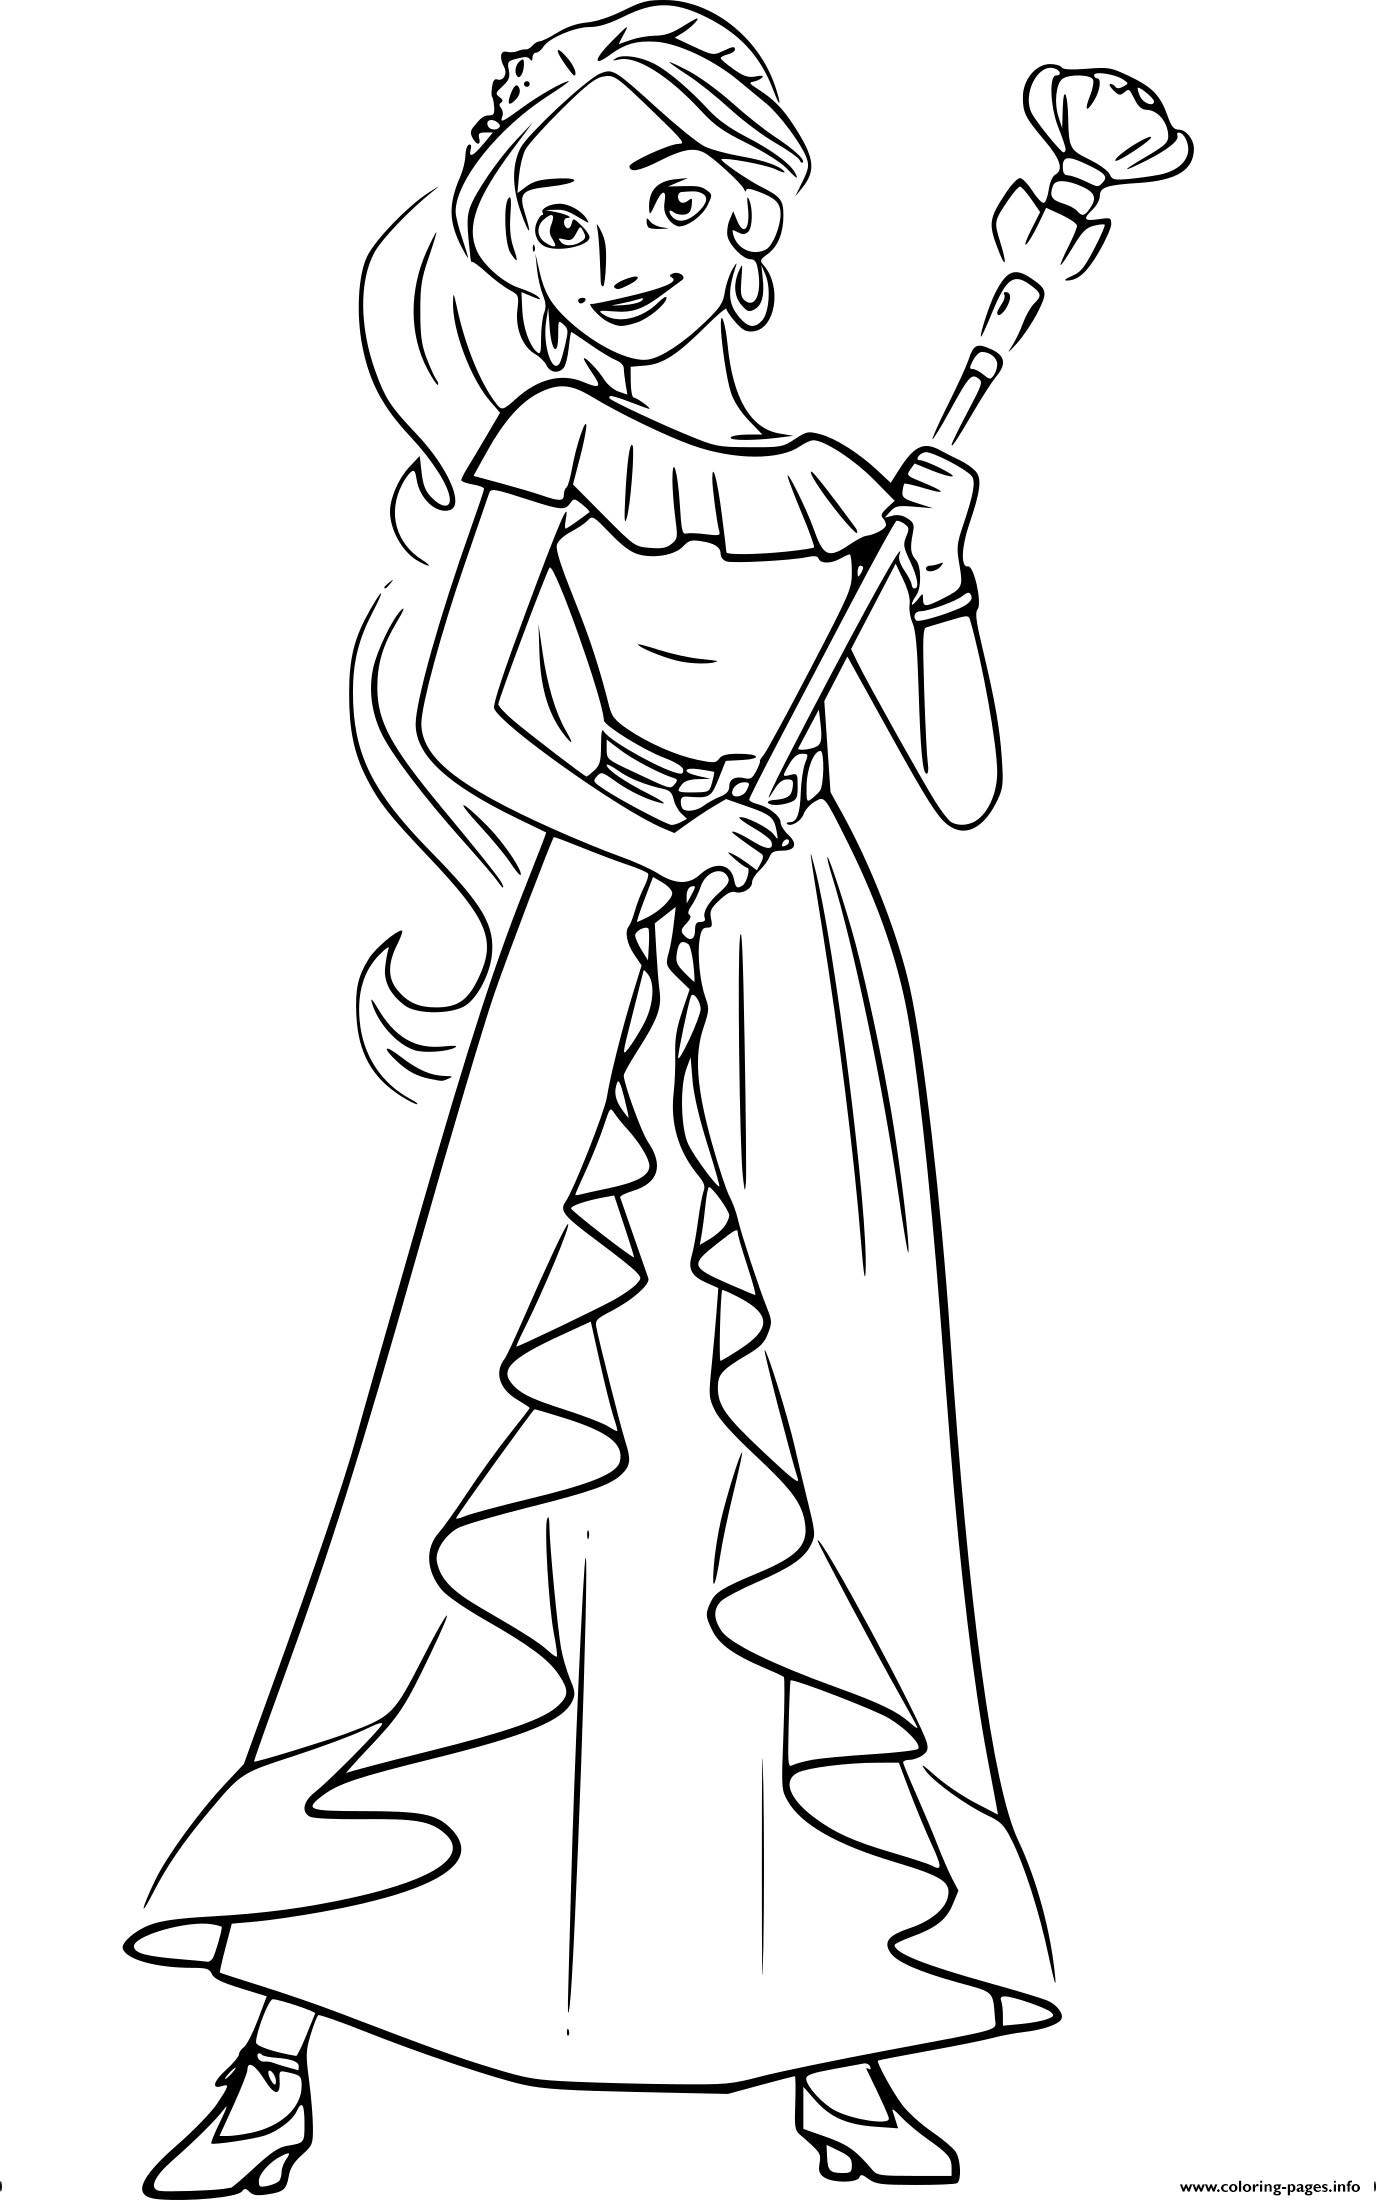 It is a picture of Peaceful princess elena coloring page